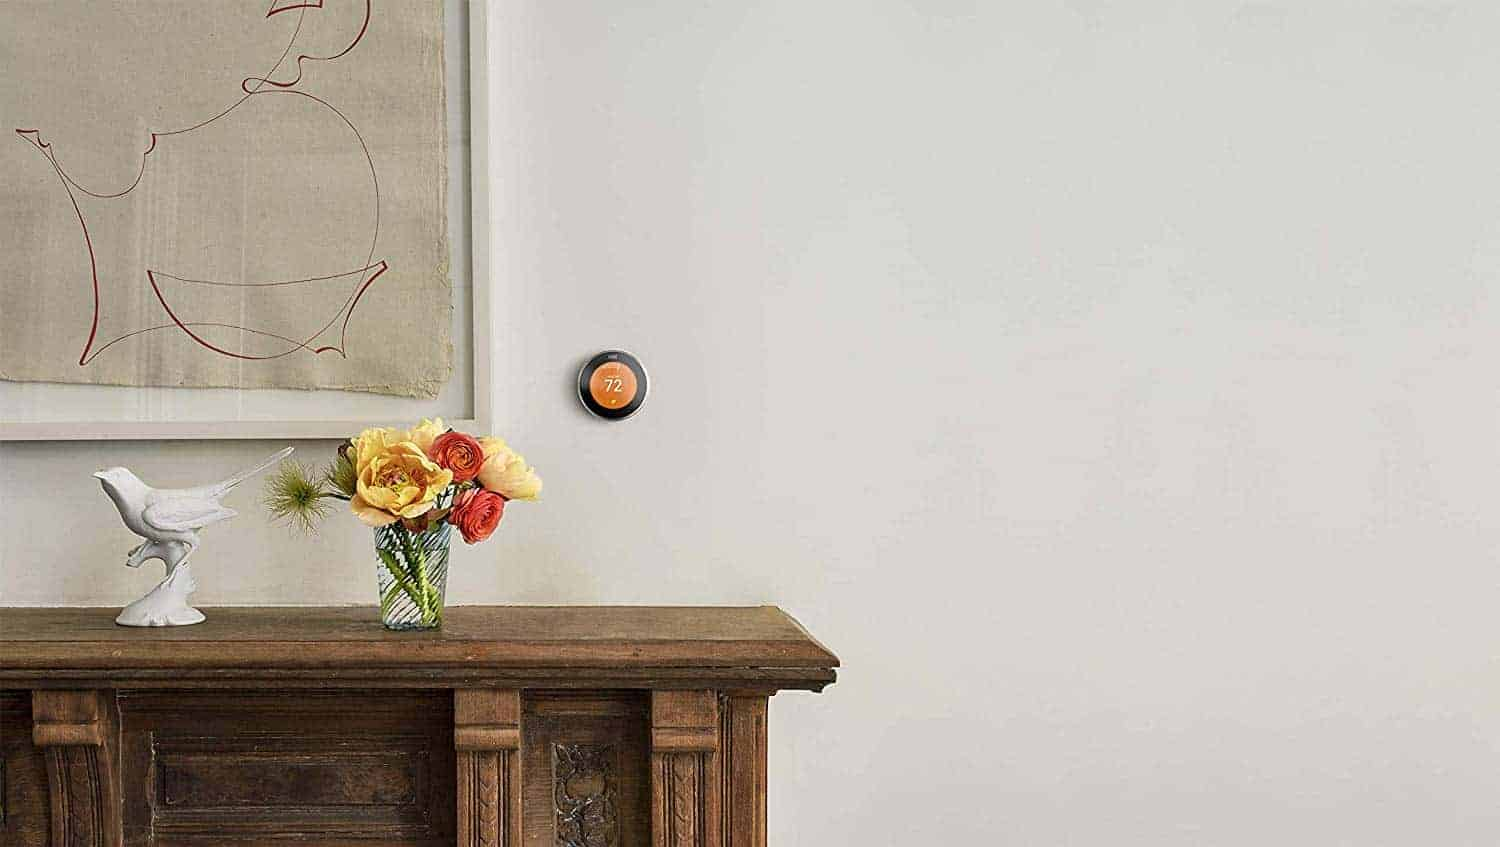 Nest_Learning_Thermostat_features_3